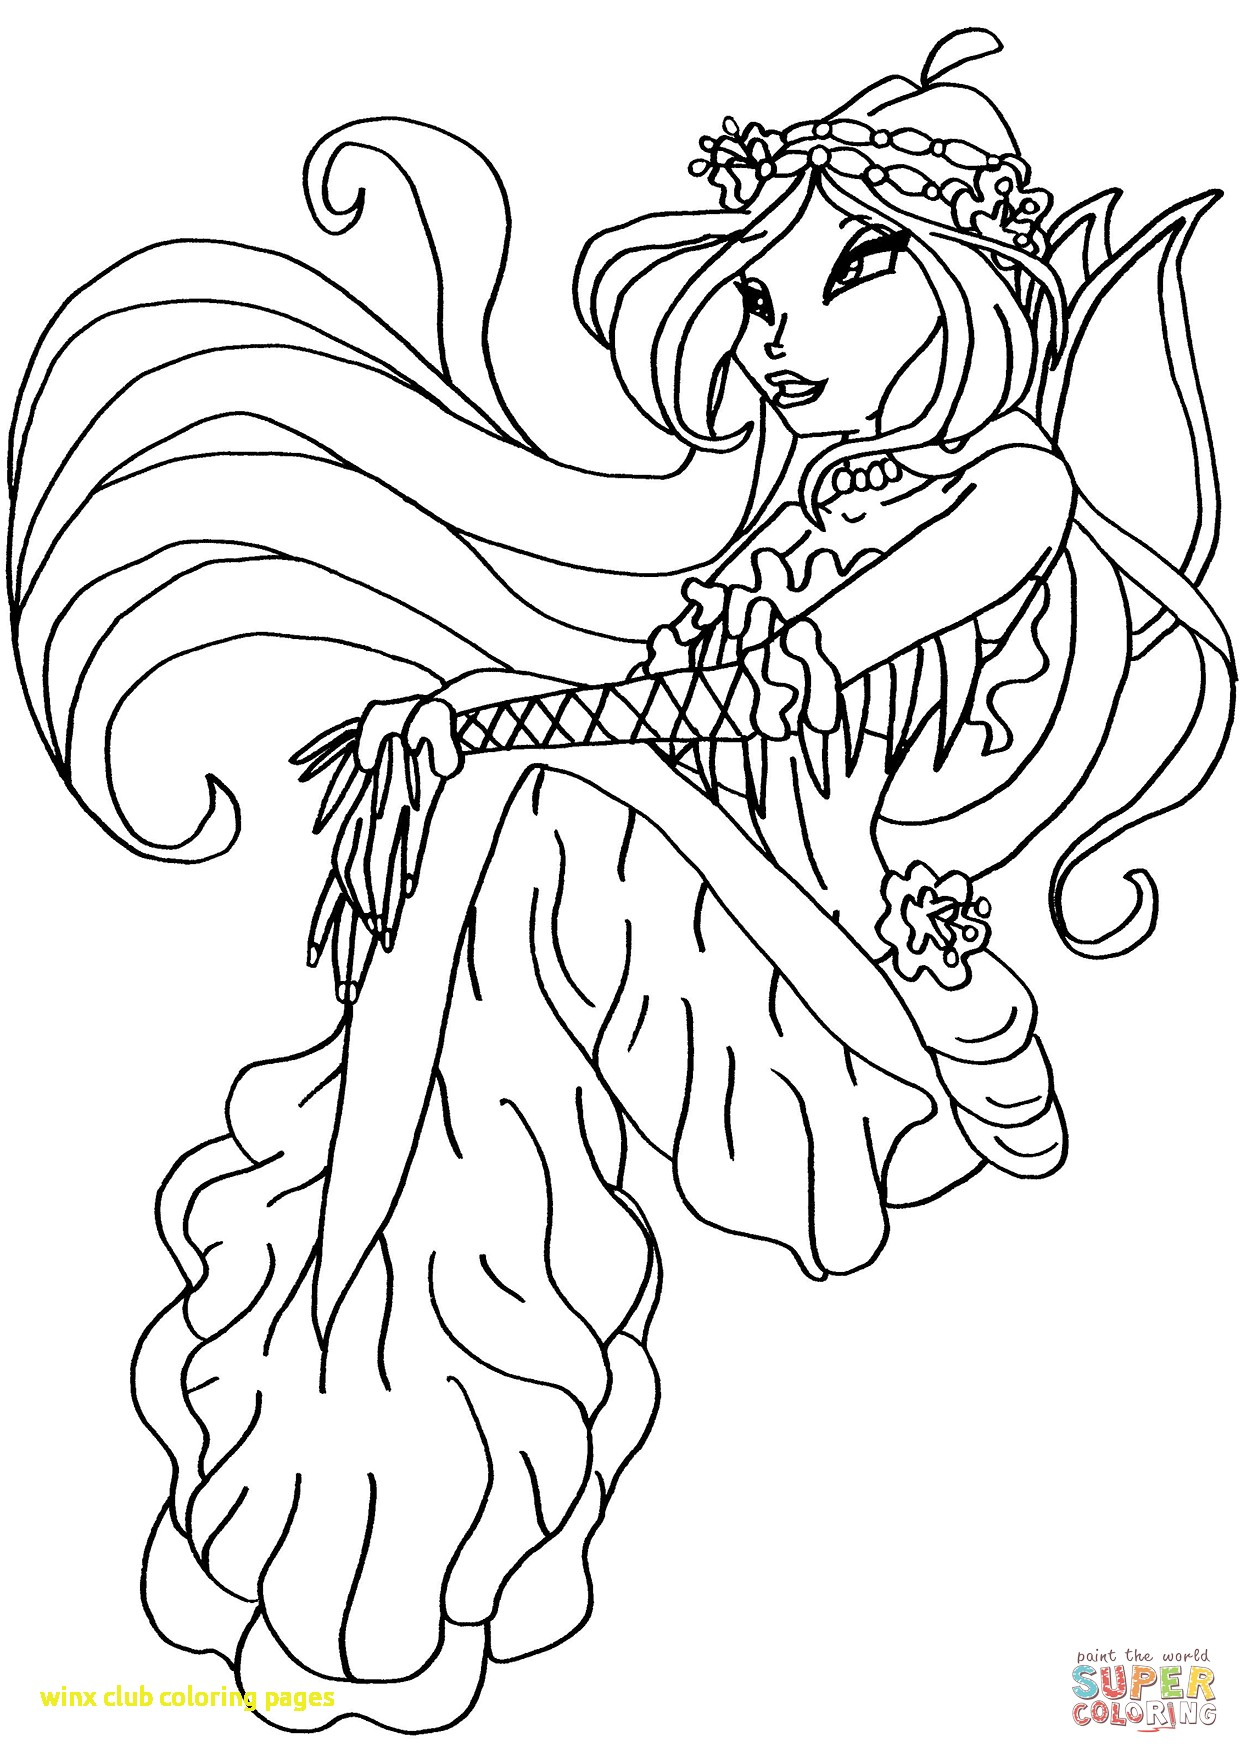 1240x1754 Winx Club Coloring Pages With Winx Club Mermaid Flora Coloring